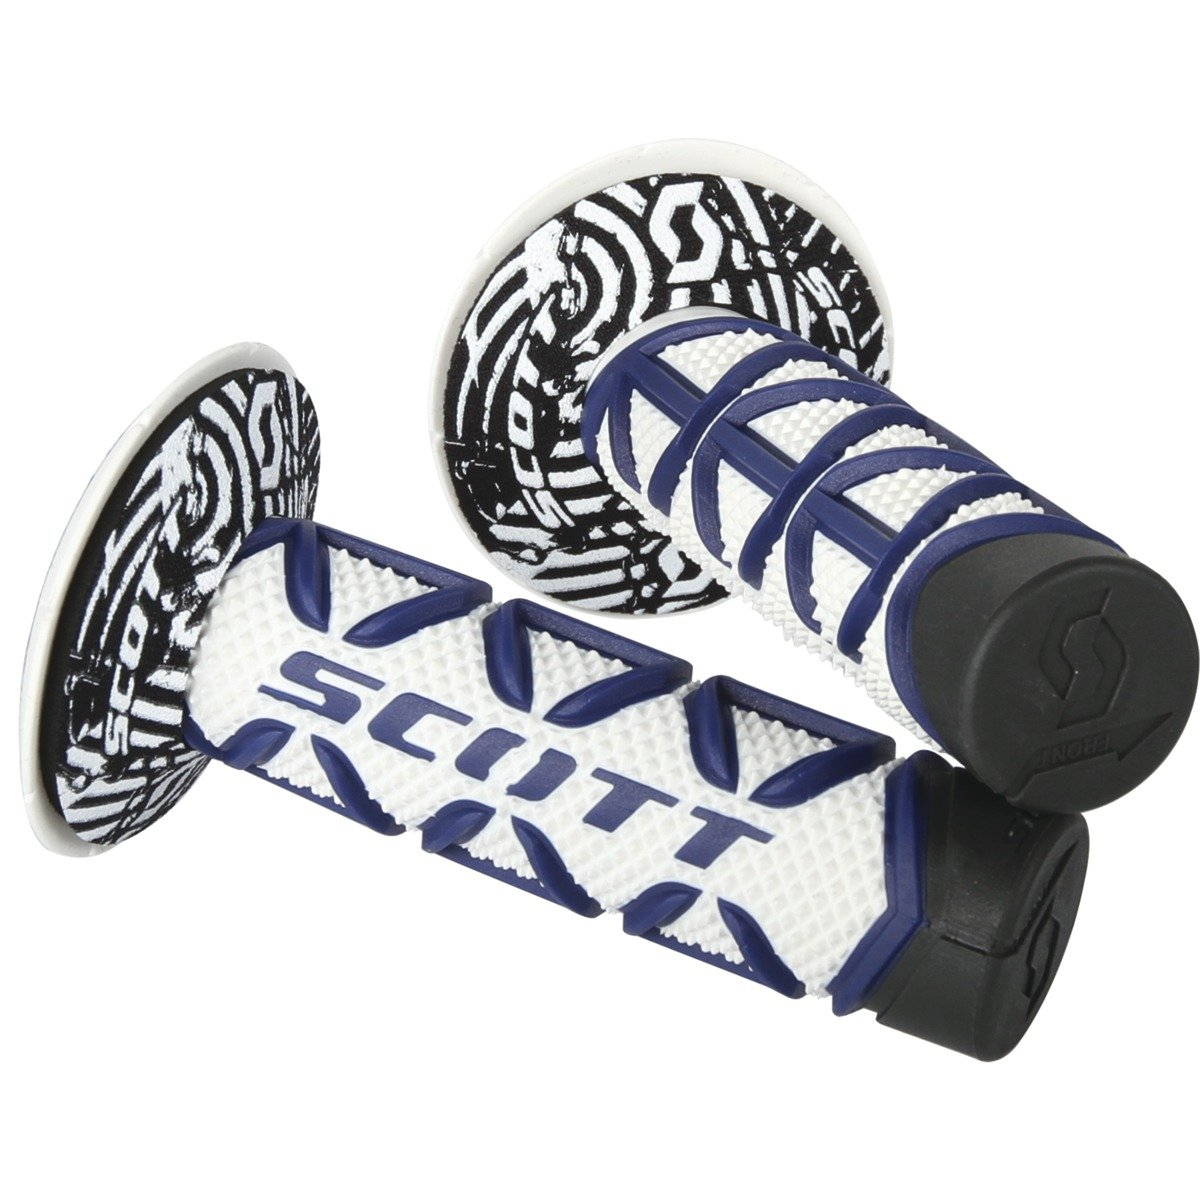 Scott Diamond MX Motorcycle Grips with Bar End Blue / White